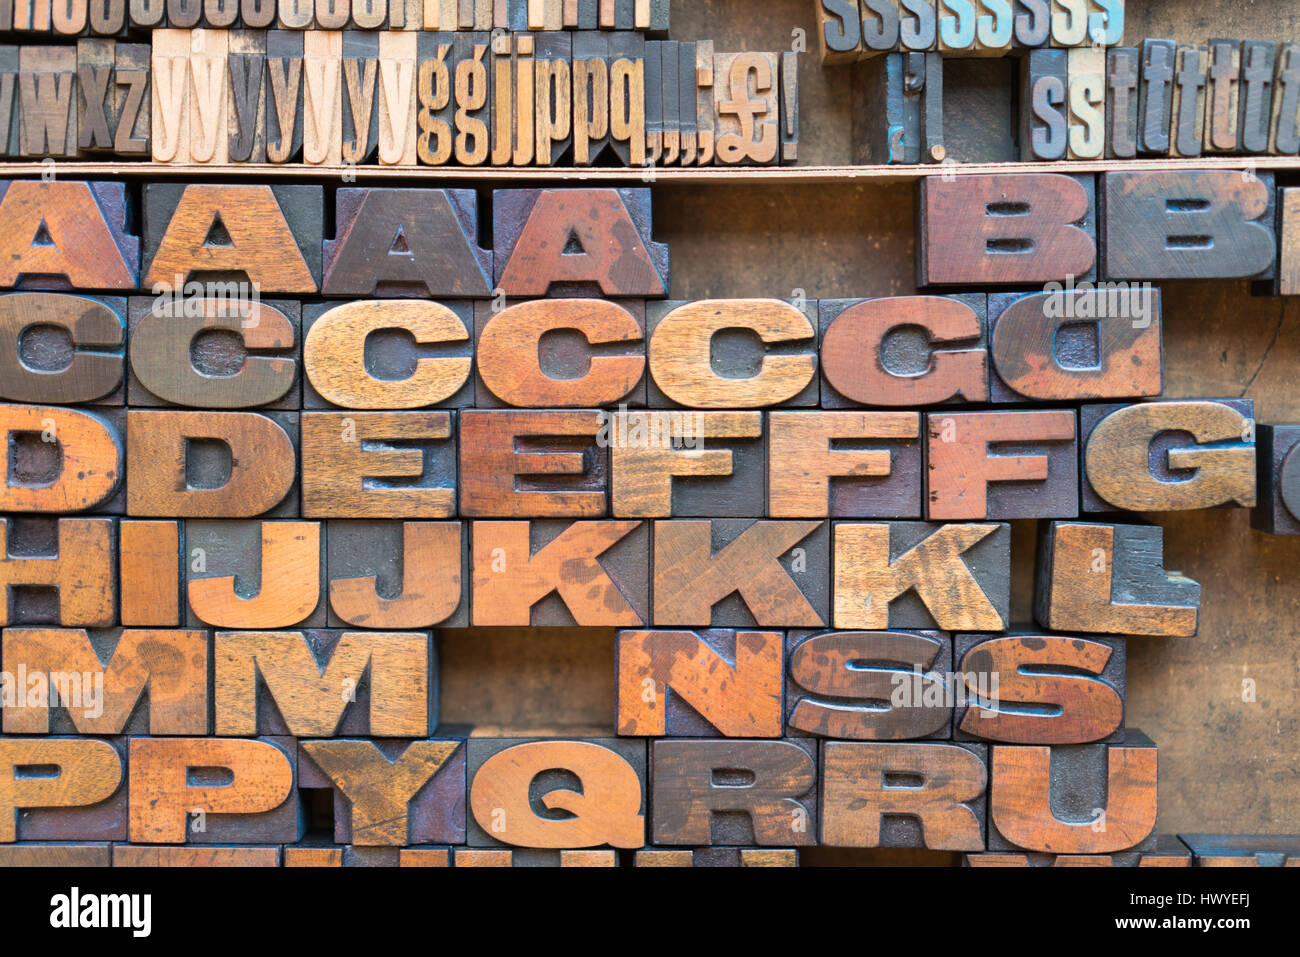 Wood block letter press lettering in macro detail - Stock Image